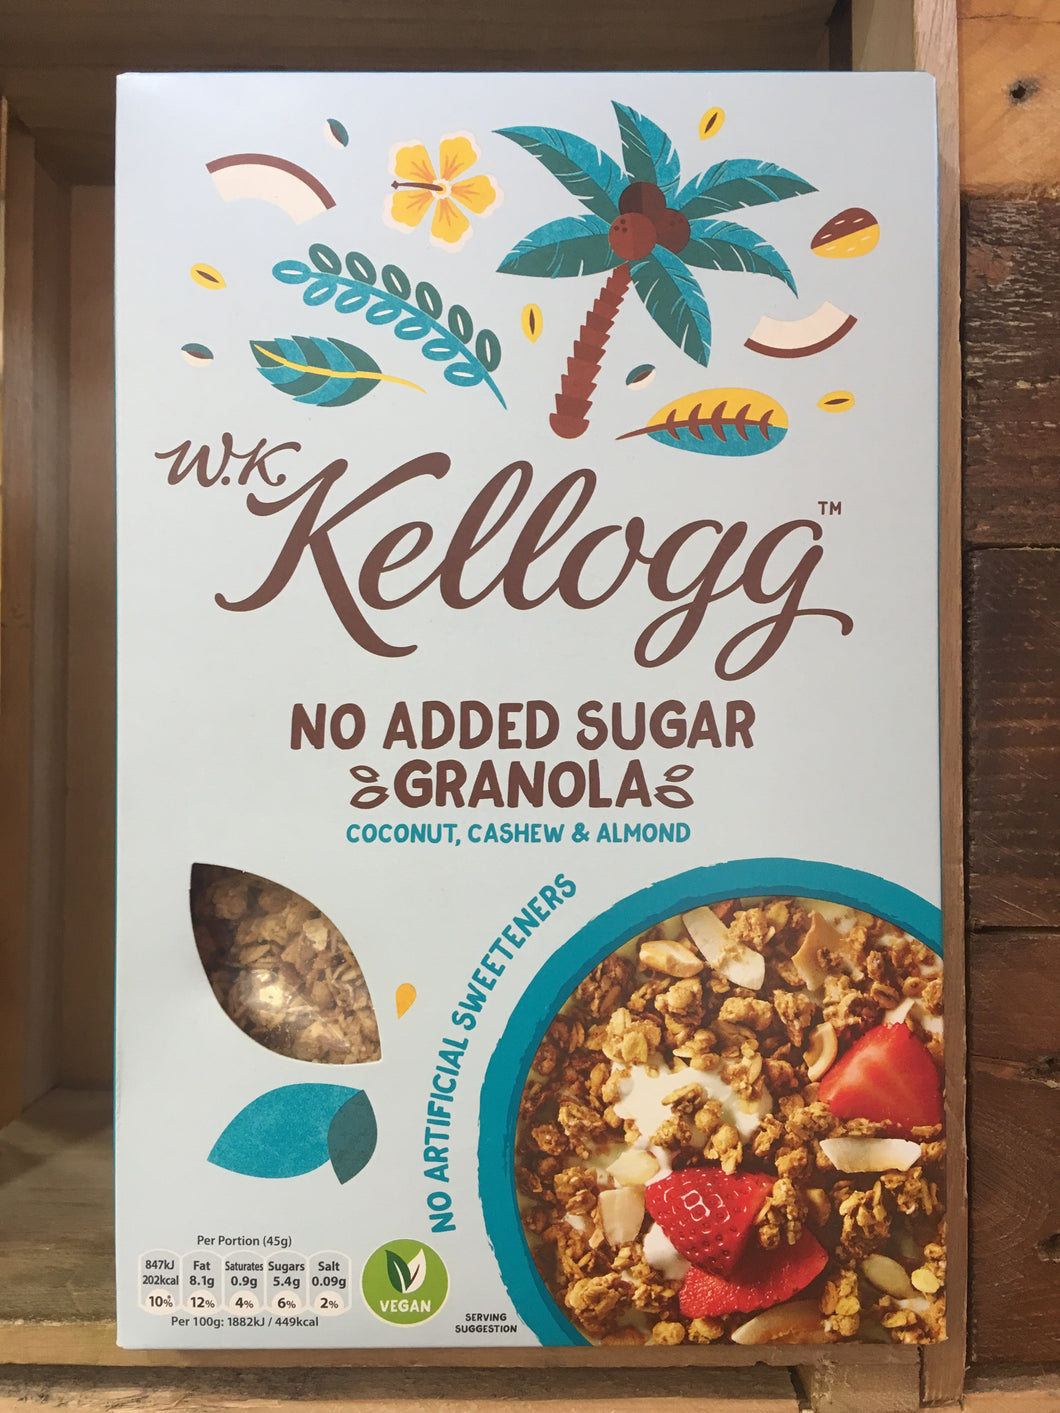 Kellogg No Added Sugar Granola with Coconut, Cashew & Almond 570g